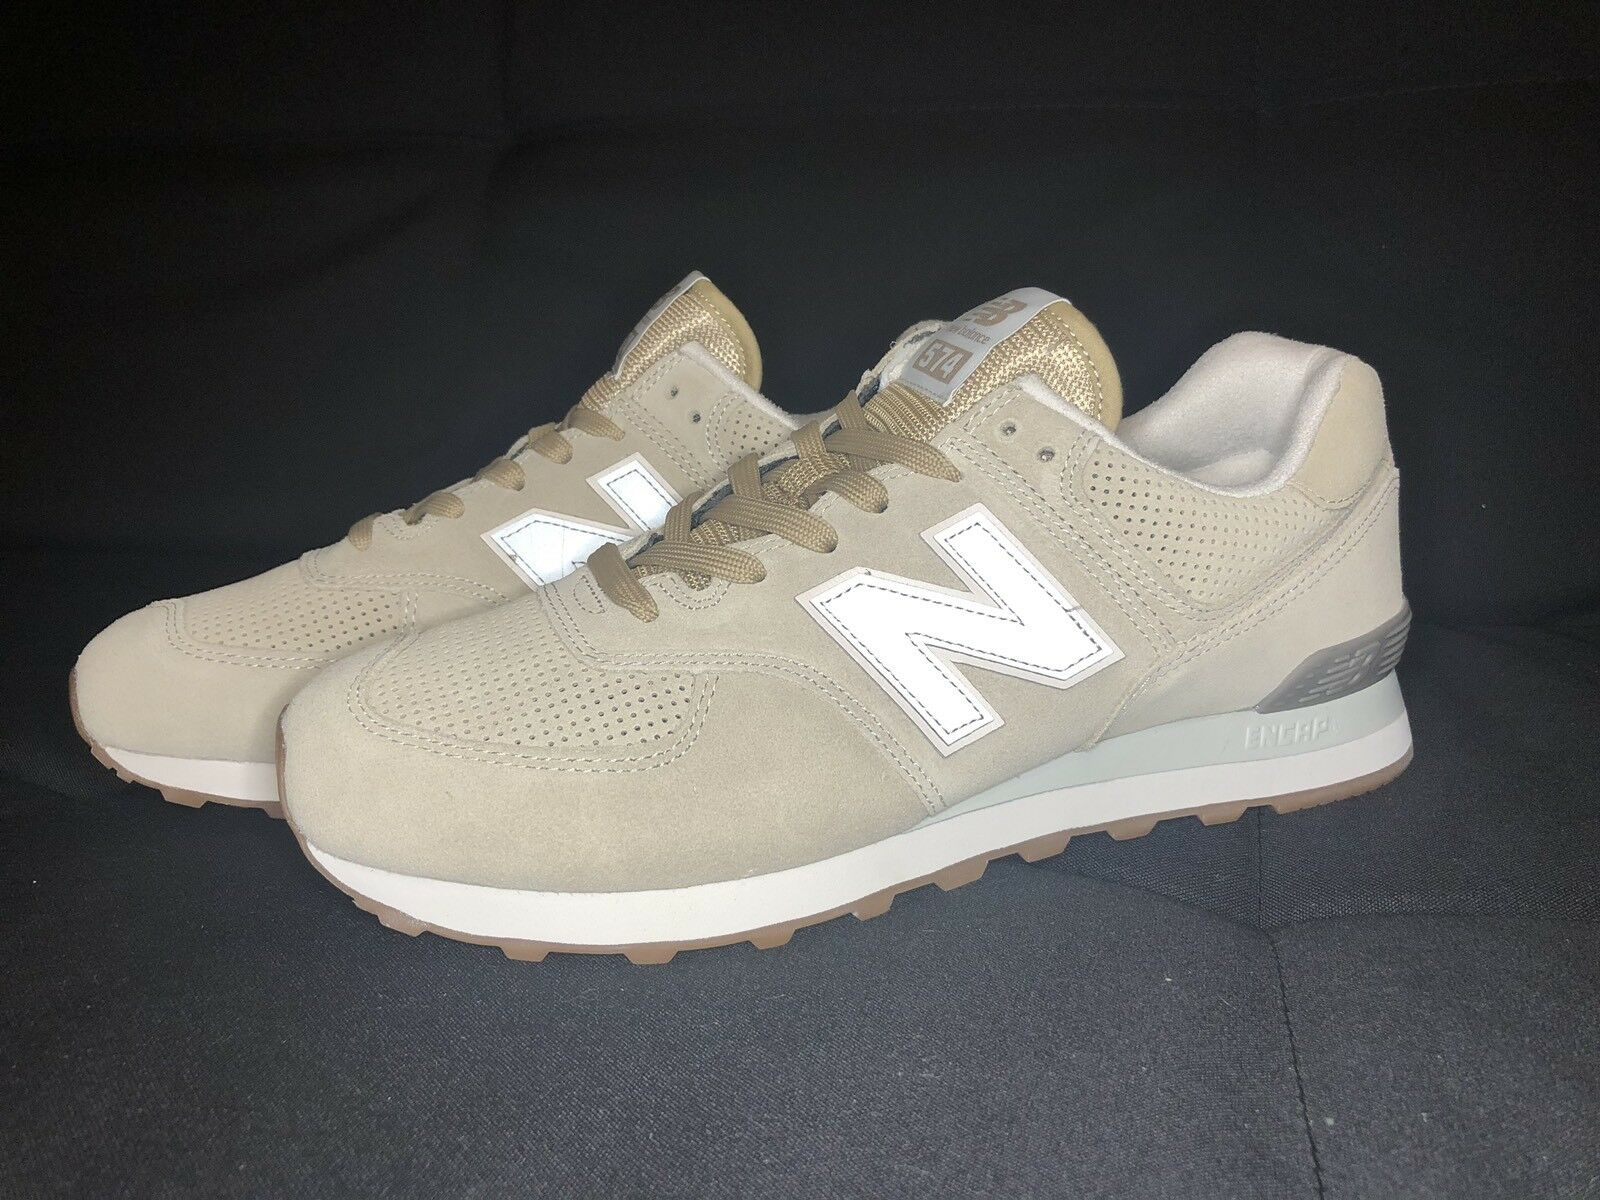 BRAND NEW   Men's New Balance shoes Size 11 - ML574ESF Classic Beige Tan